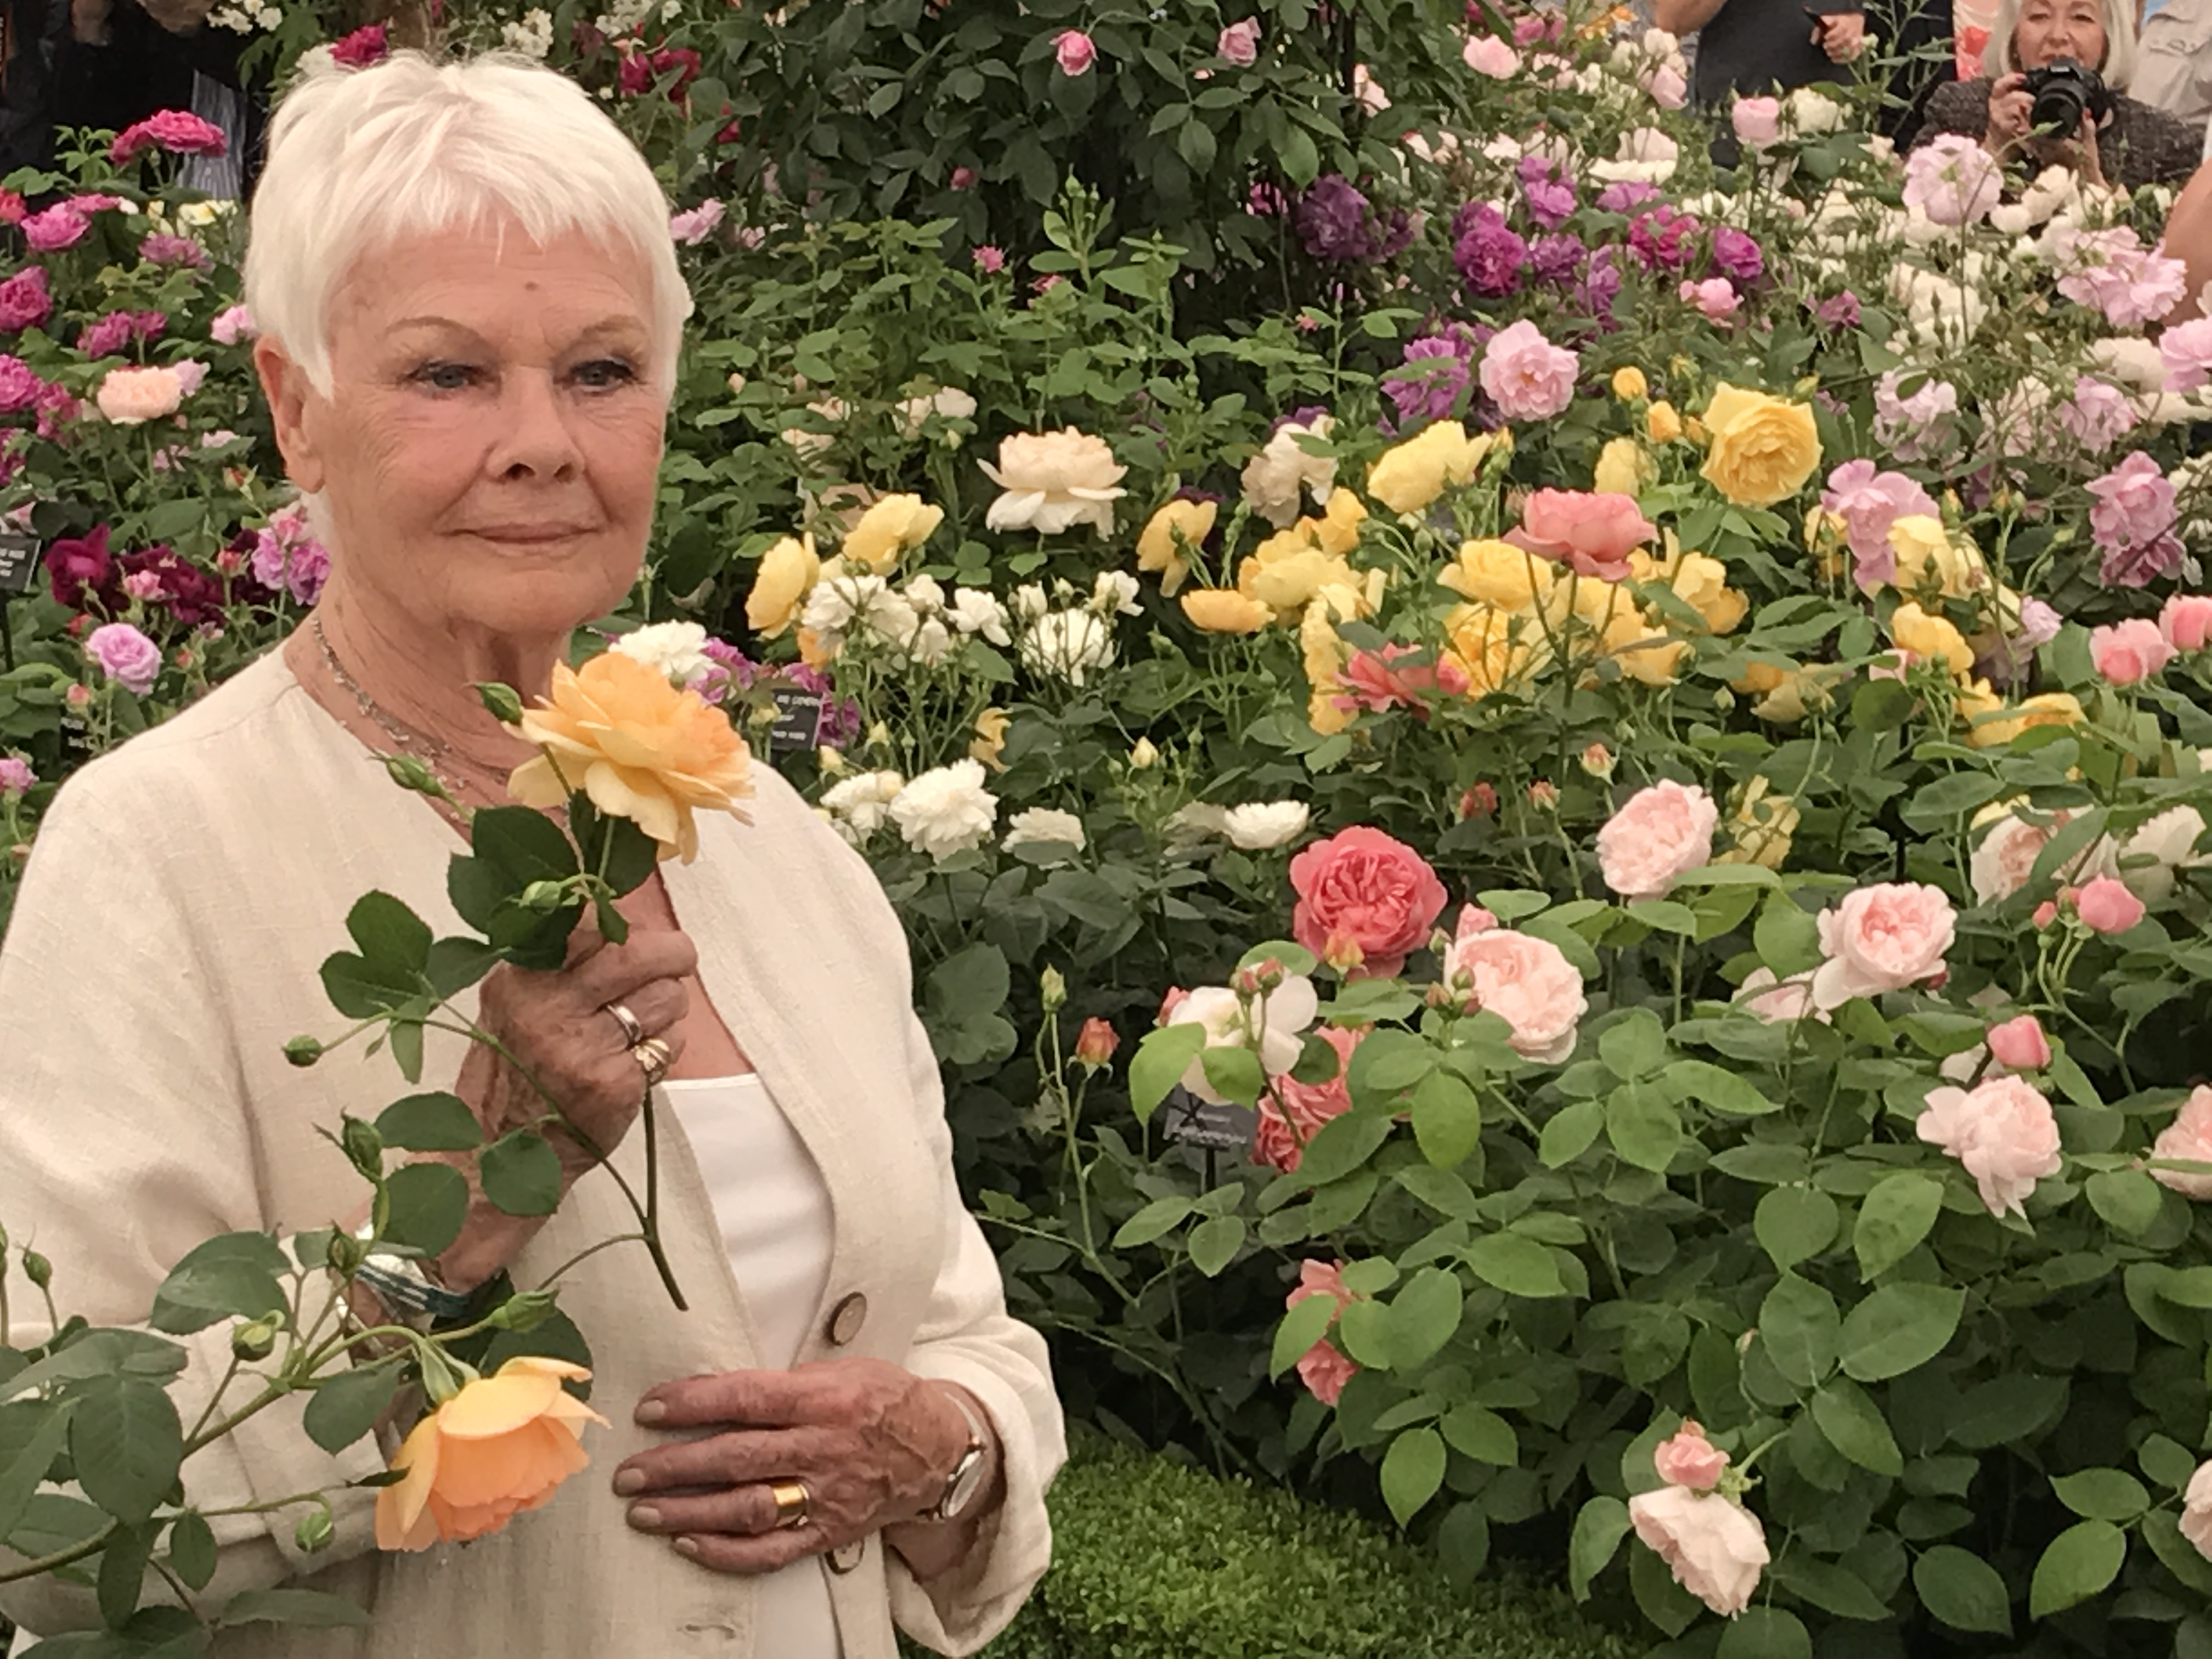 Dame Judi Dench ditched flowers to send him a banana instead (Hannah Stephenson/PA)